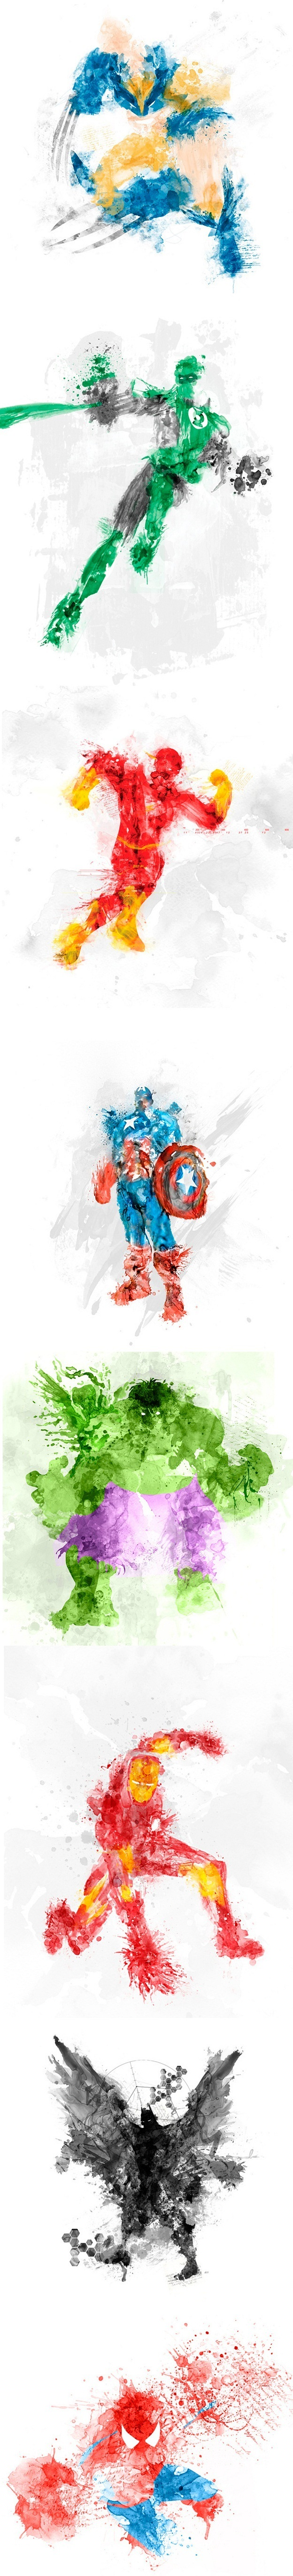 funny-pictures-super-heroes-art